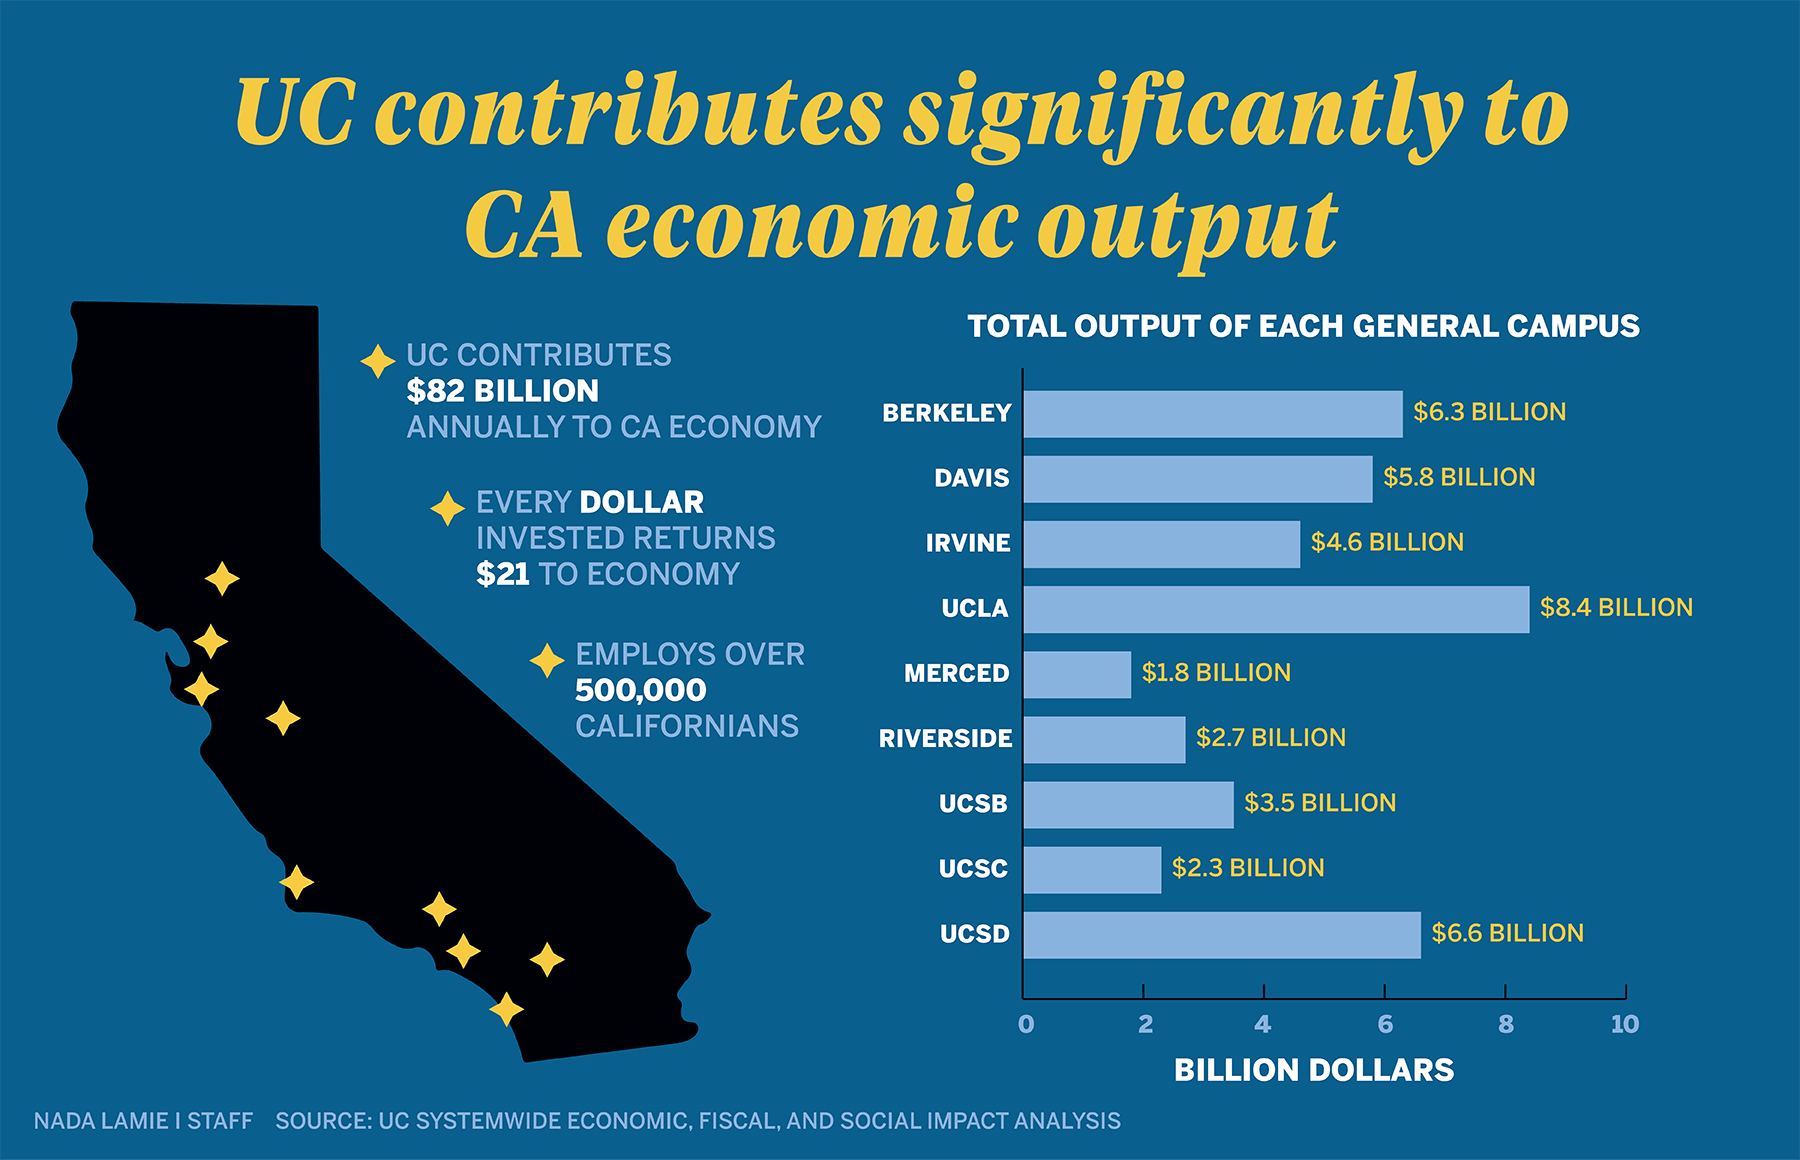 Study finds UC provides $82B in economic output for CA